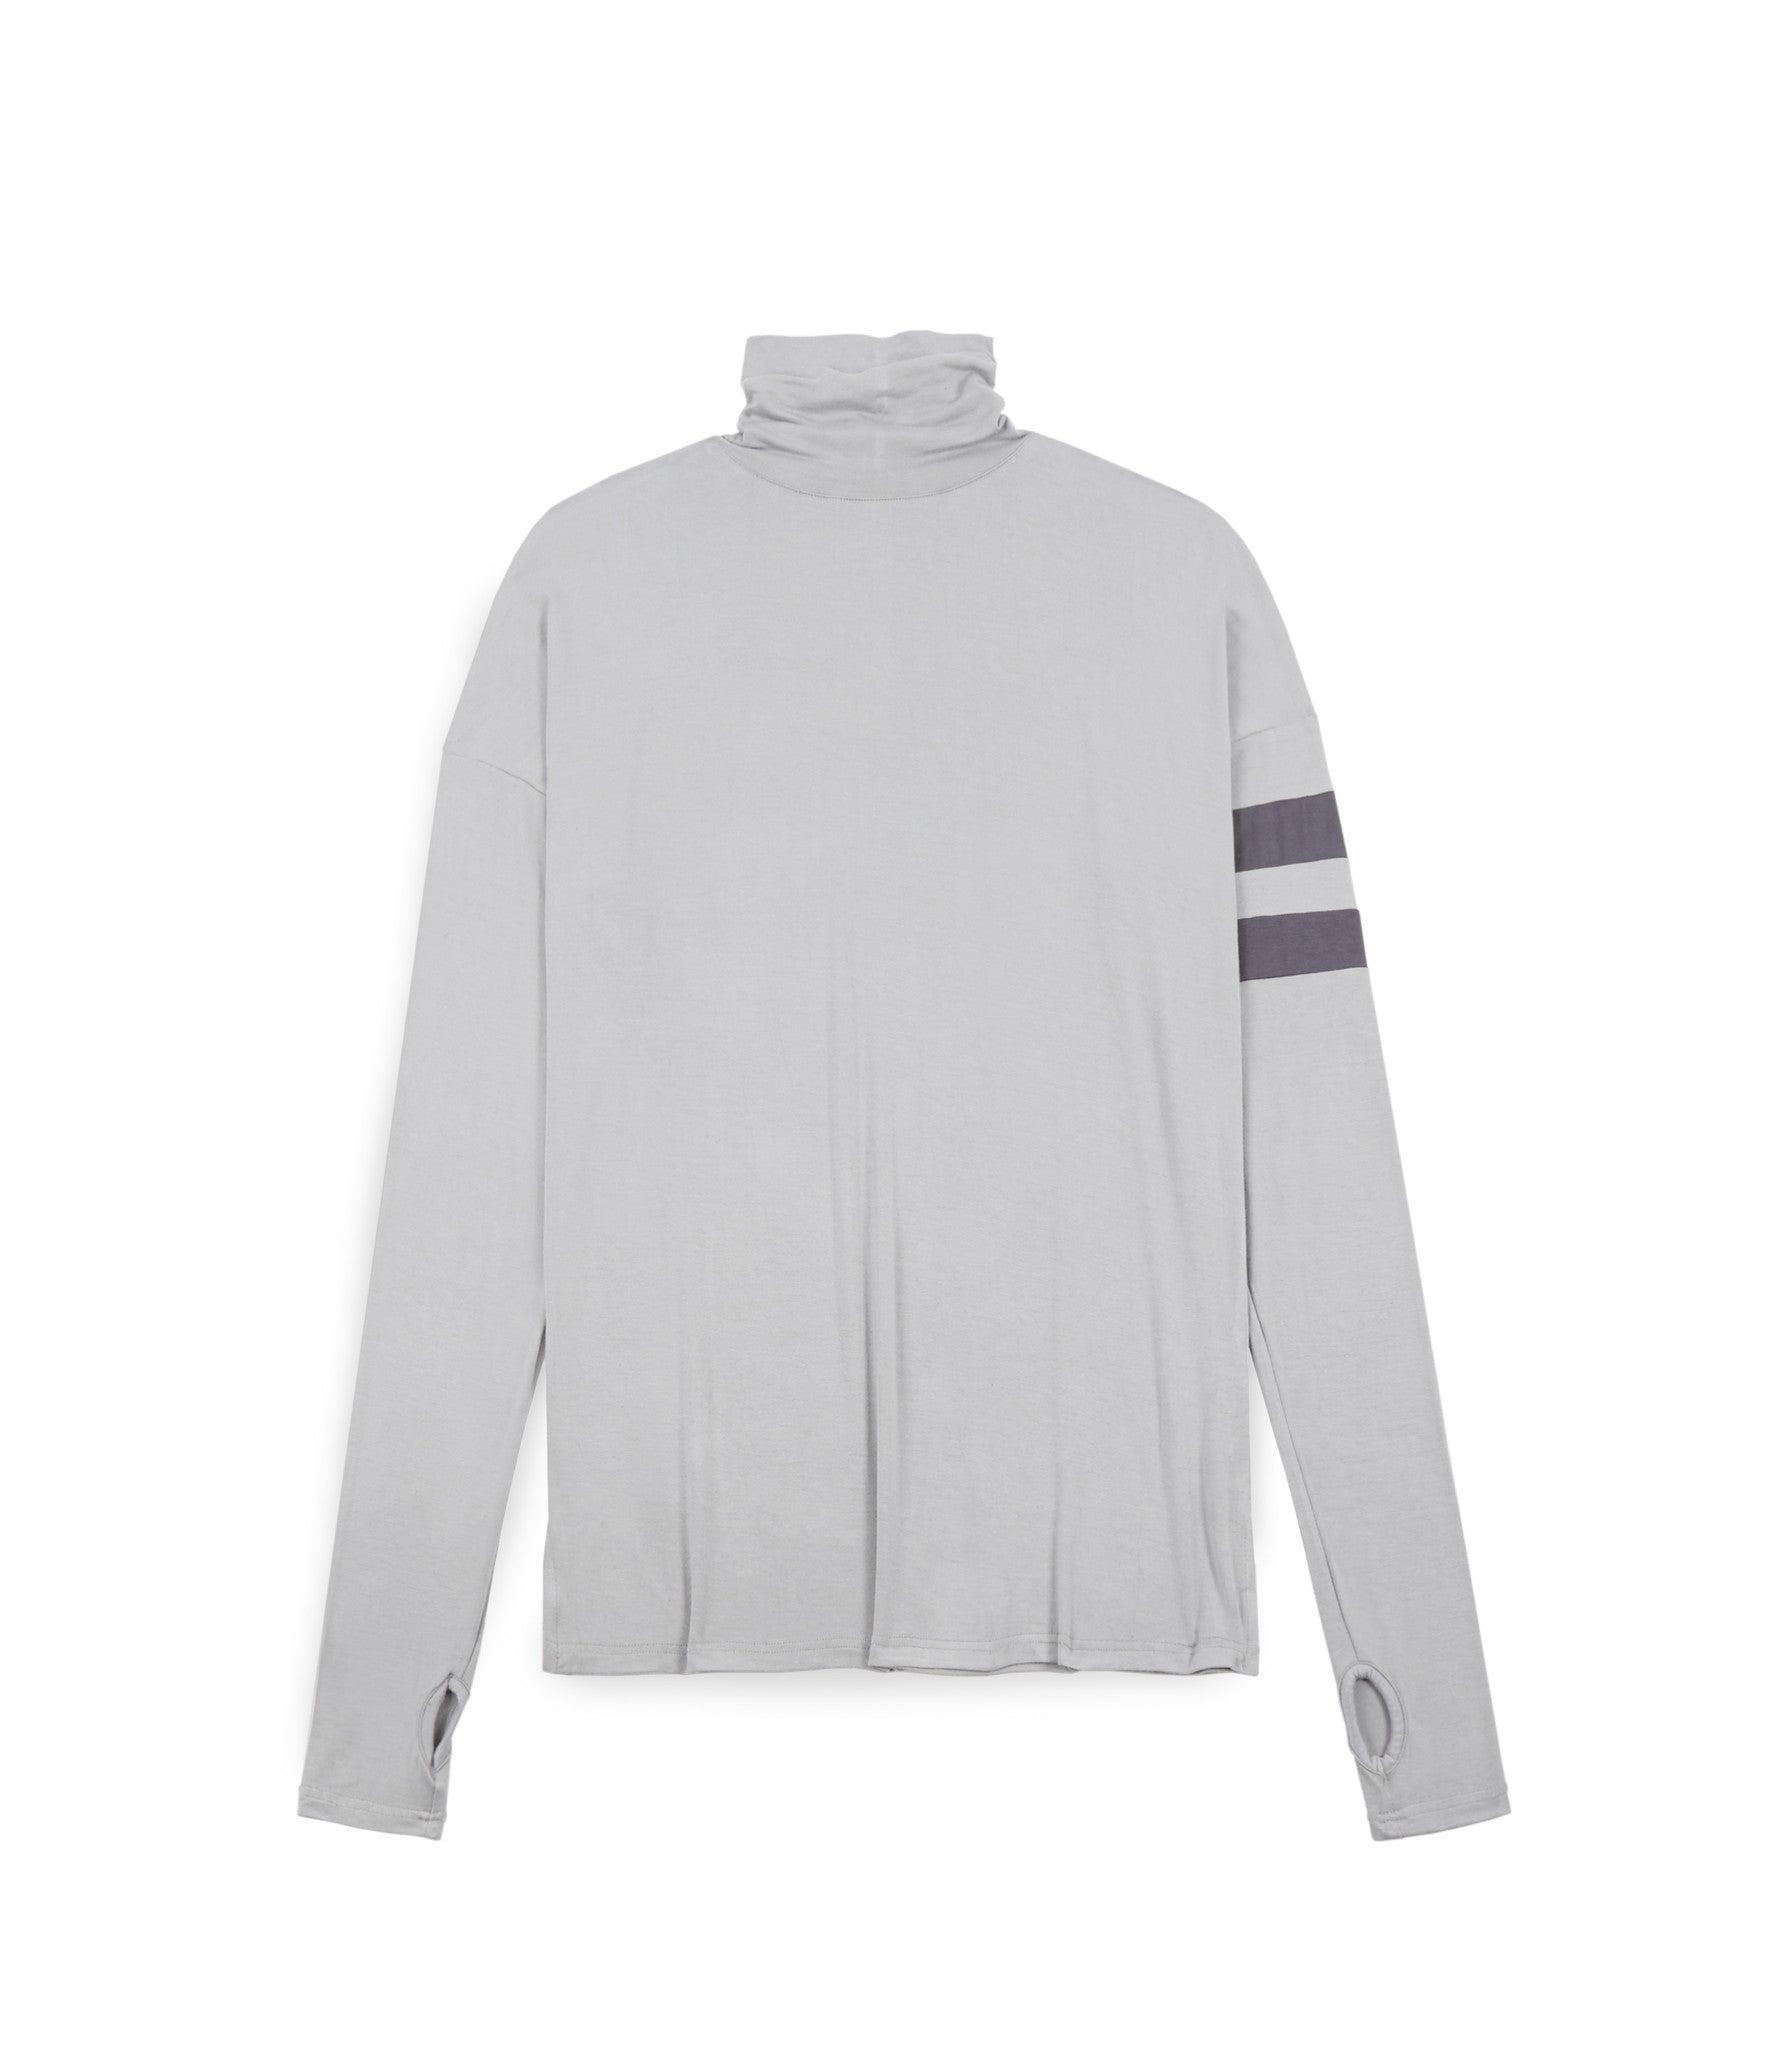 LS105 Roll Neck Under Layer L/S Tee - Ash Grey - underated london - underatedco - 1